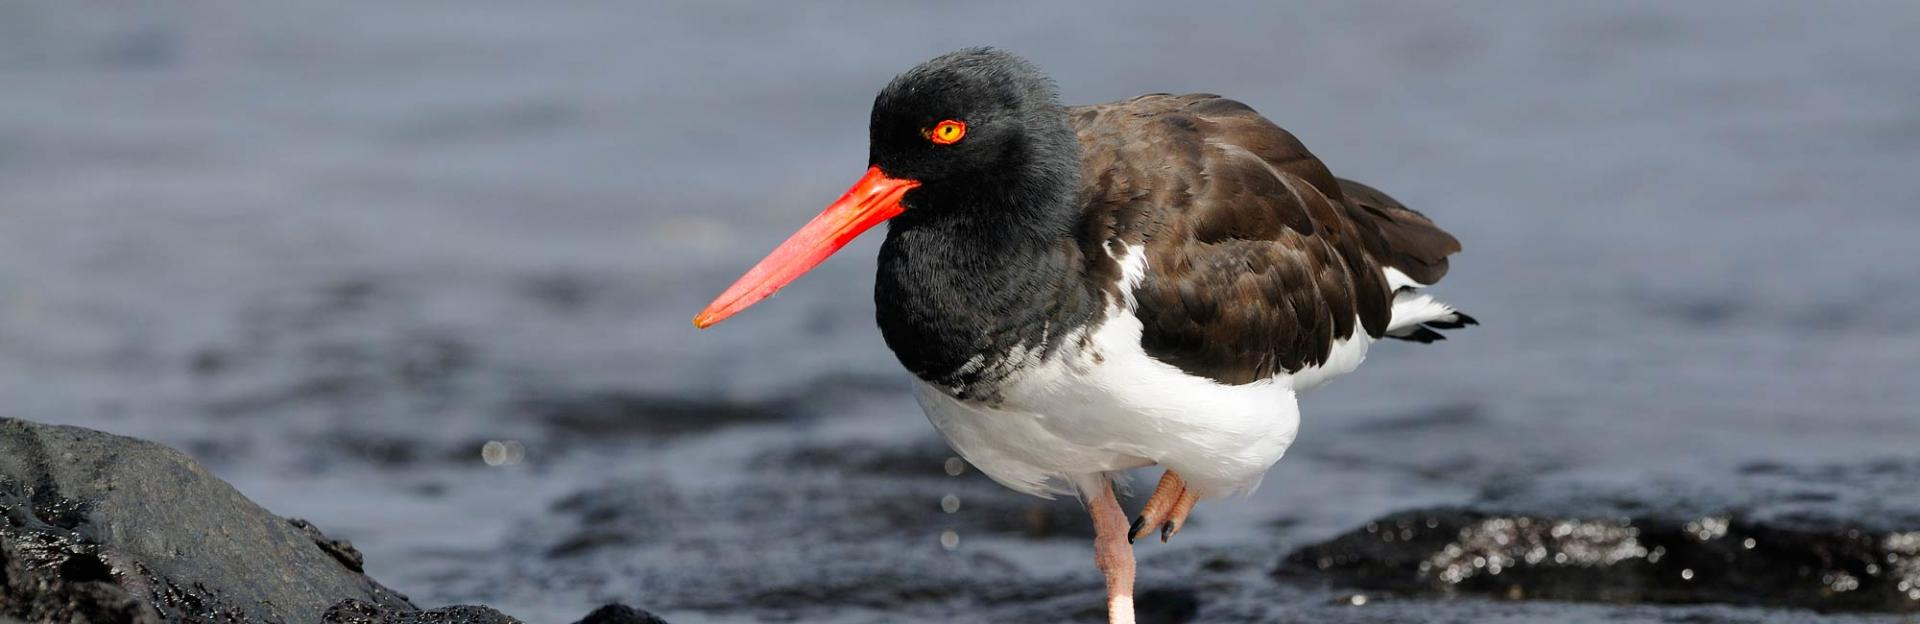 American-Oystercatcher-by-Reinier-Munguia-HEADER